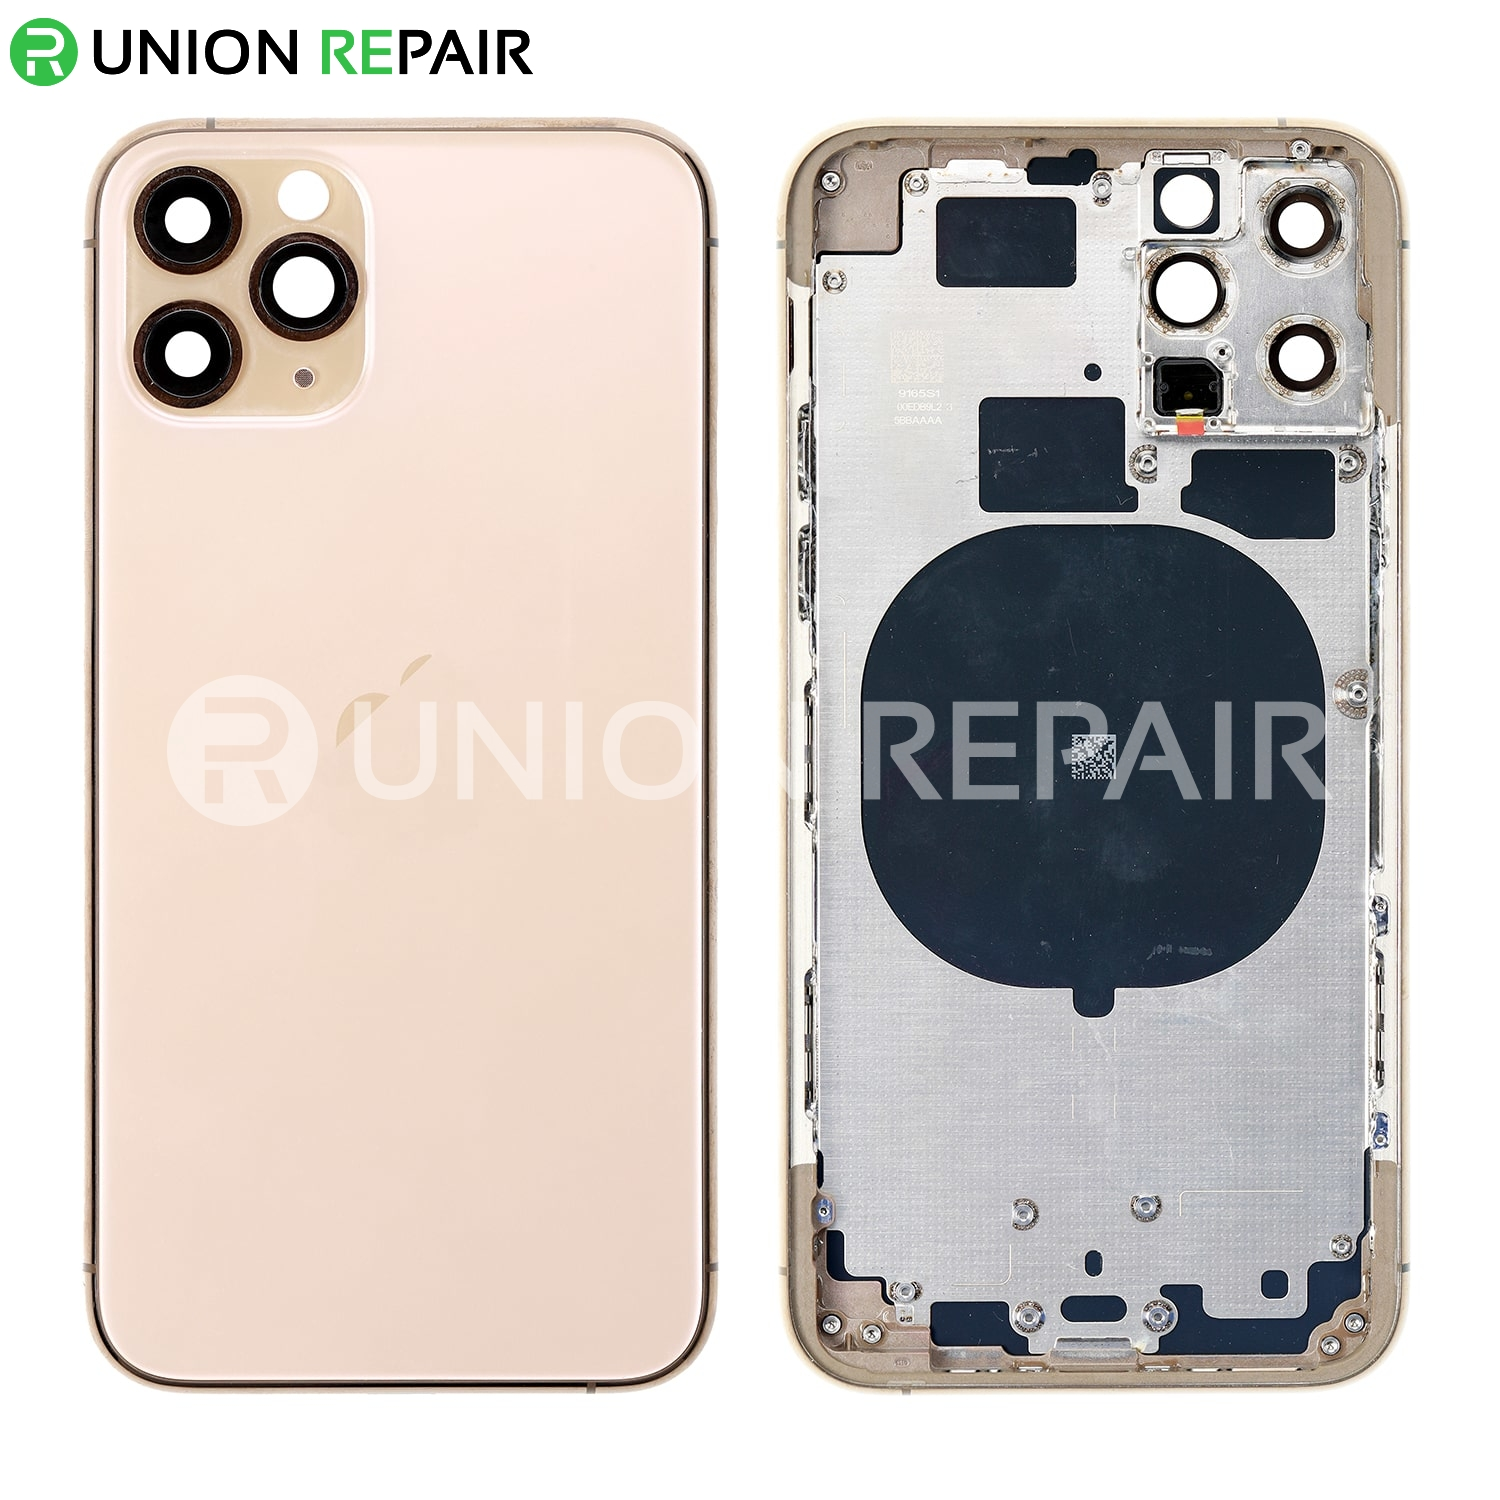 Replacement for iPhone 11 Pro Rear Housing with Frame - Gold